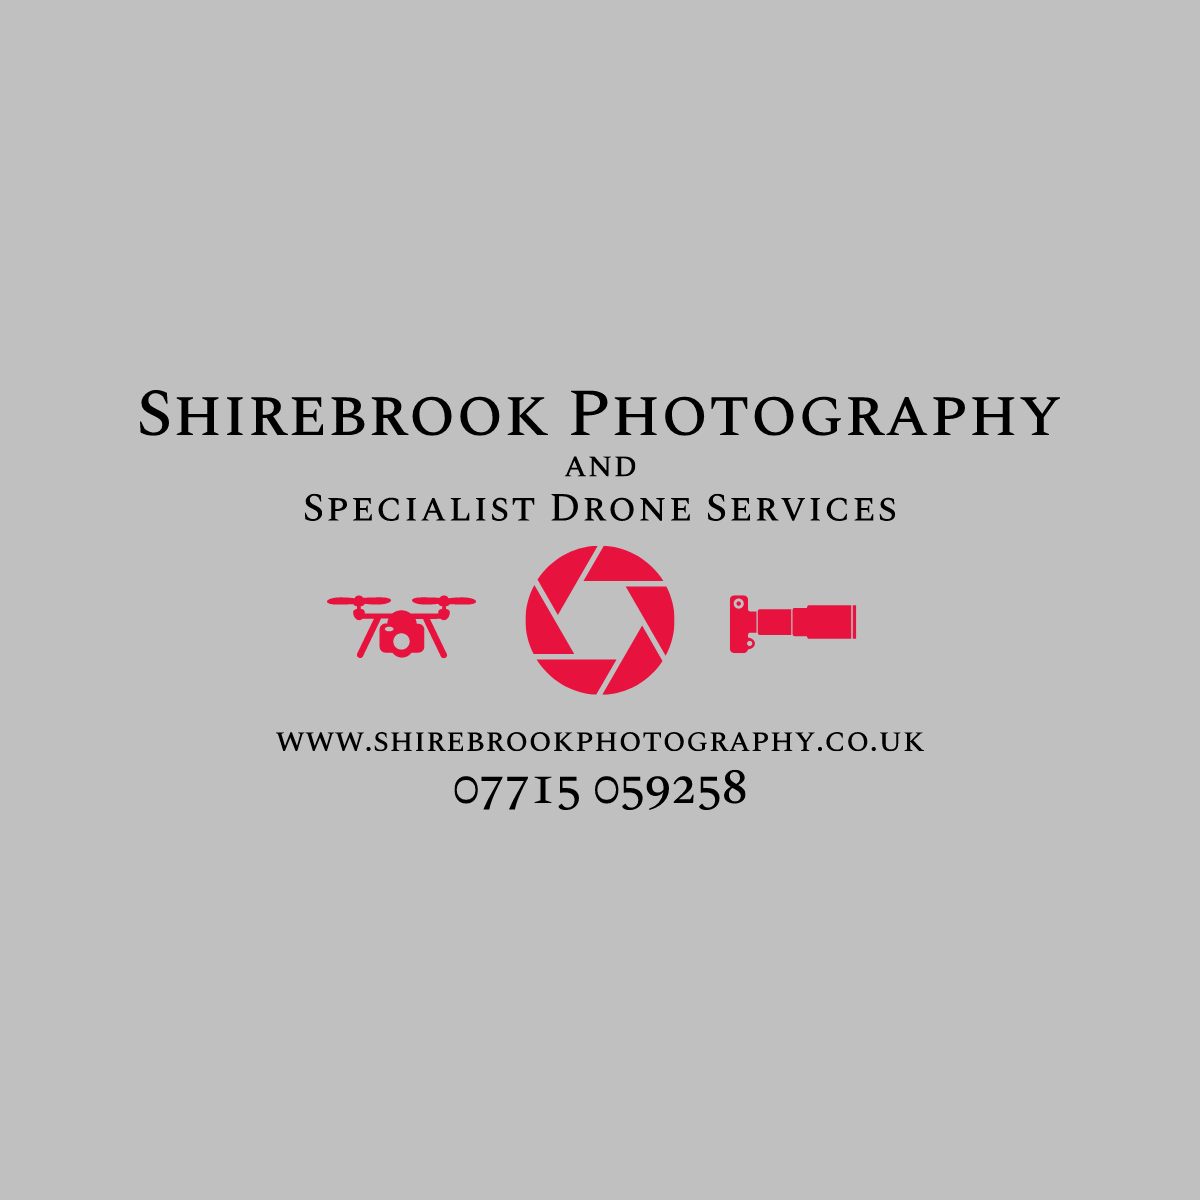 Shirebrook Photography & Drone Services